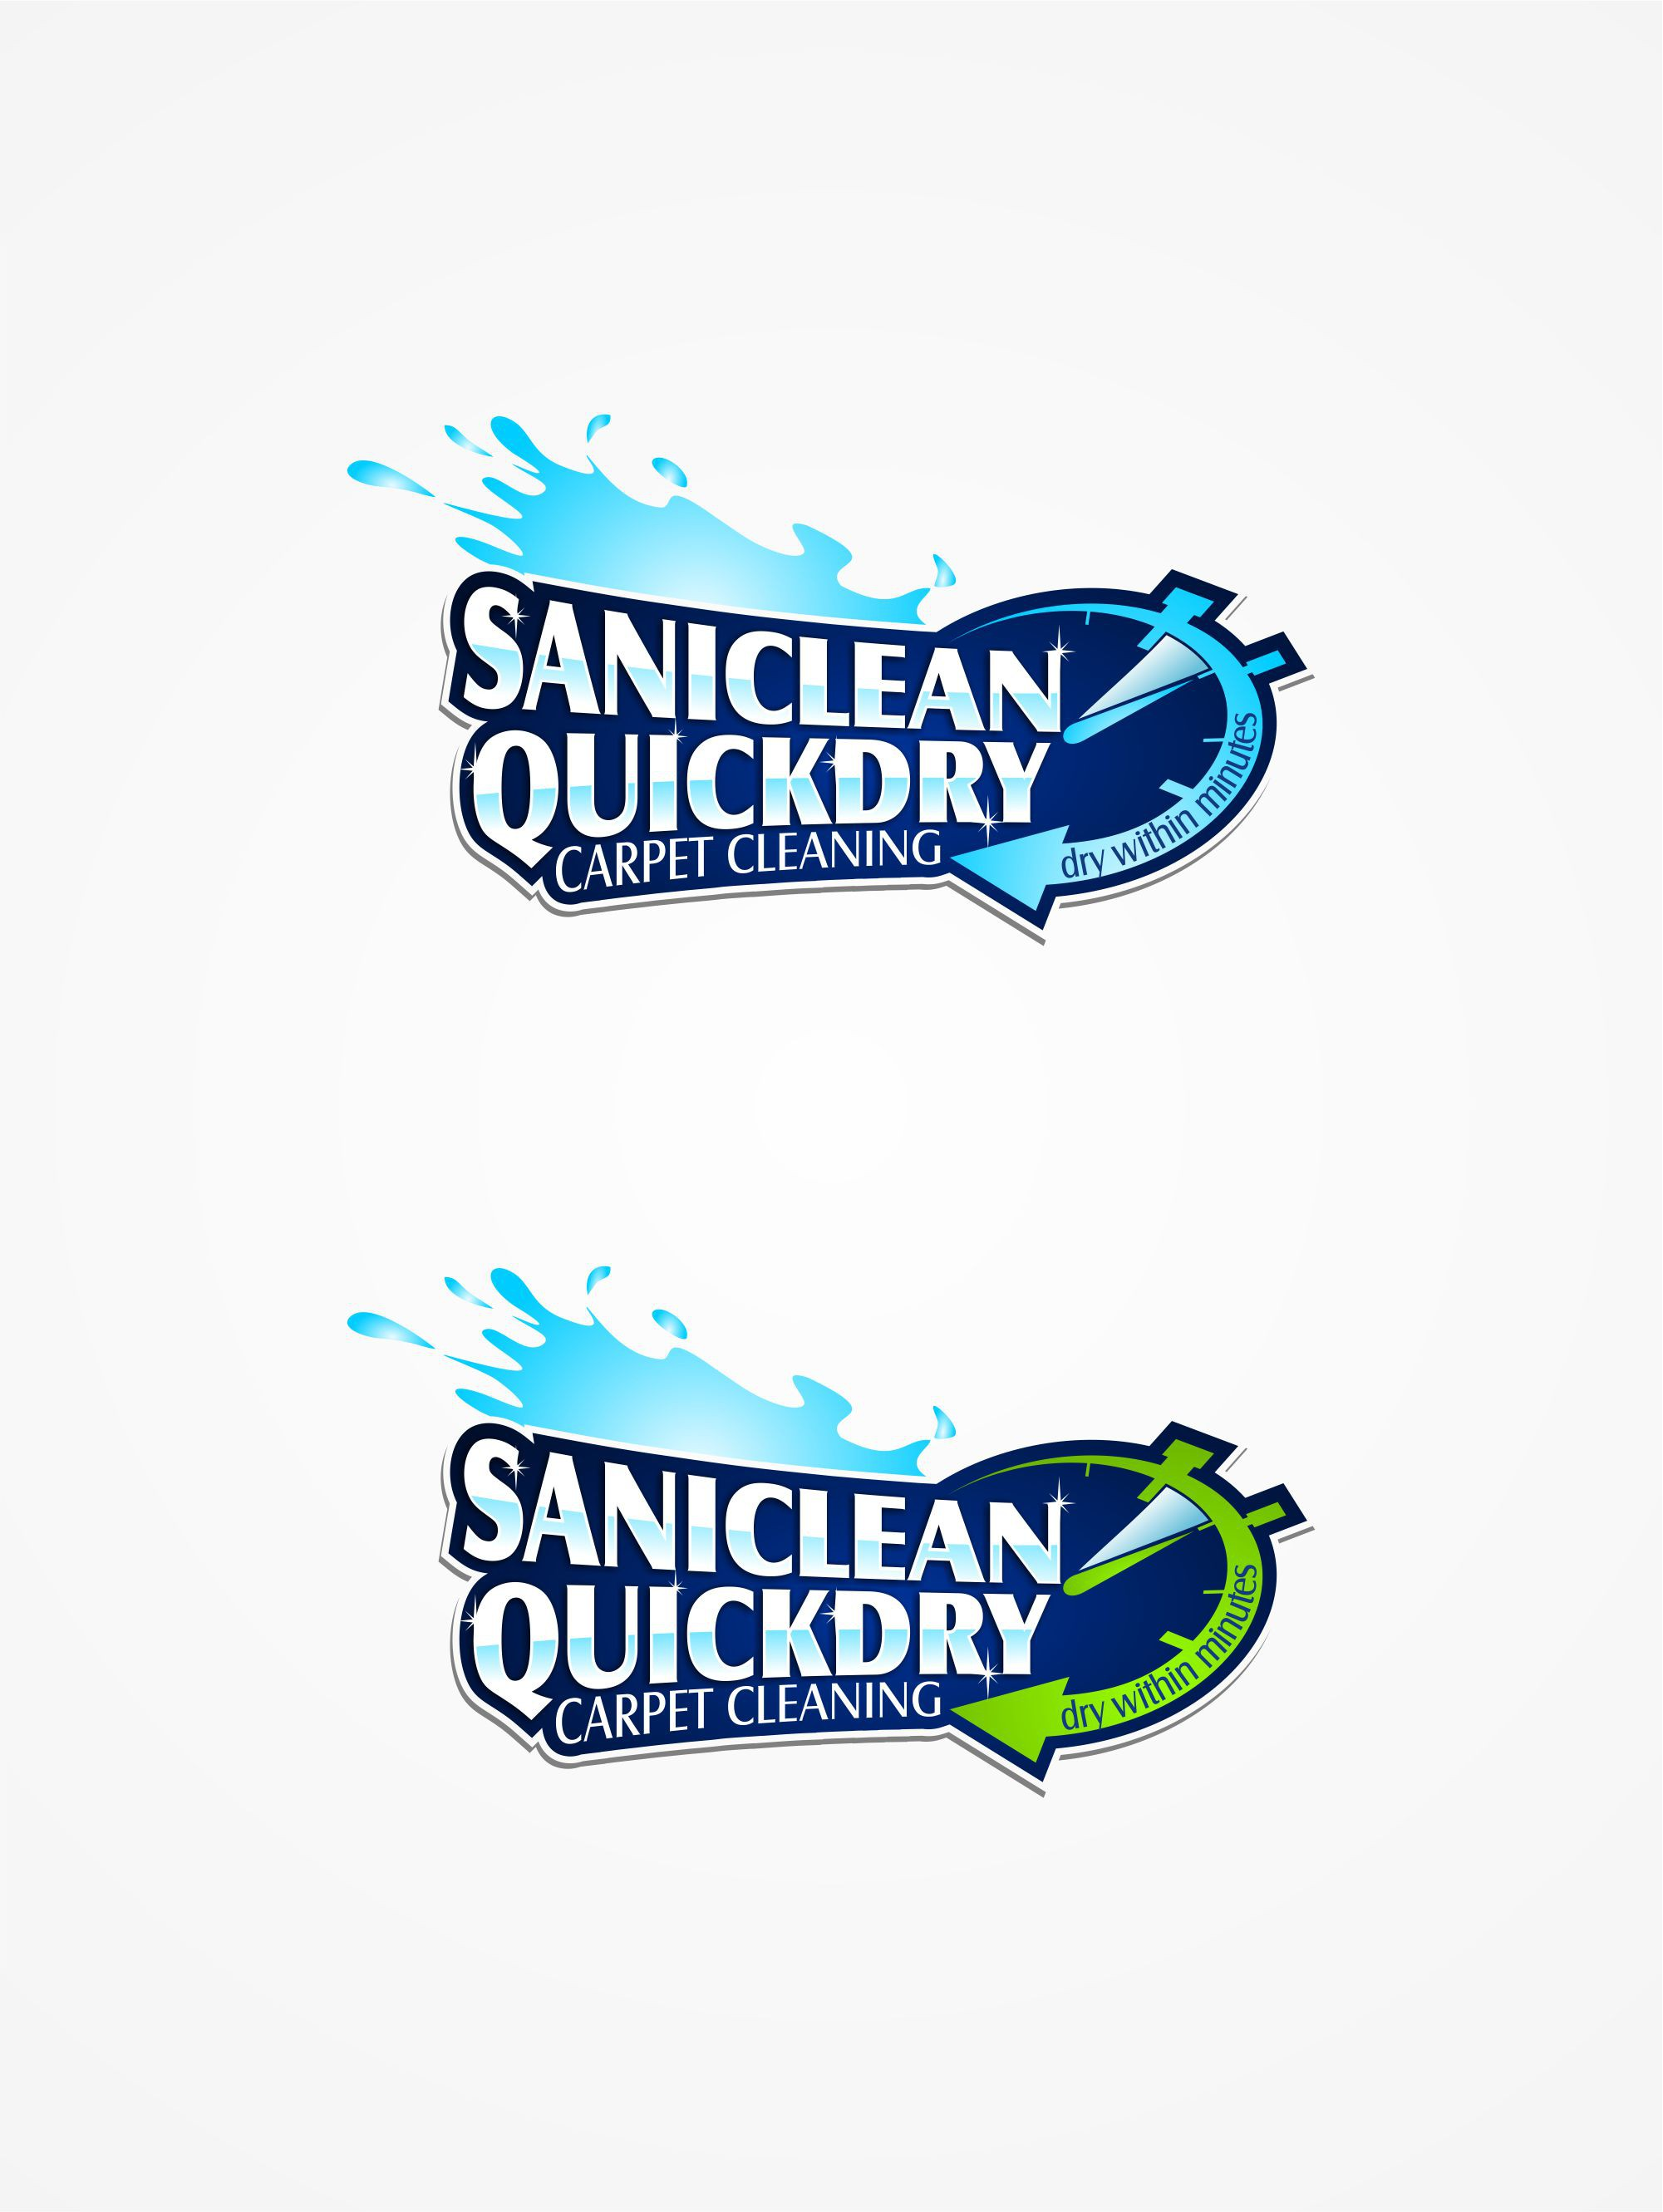 Create an eye catching logo that represents fresh and clean (freshness & cleanliness)